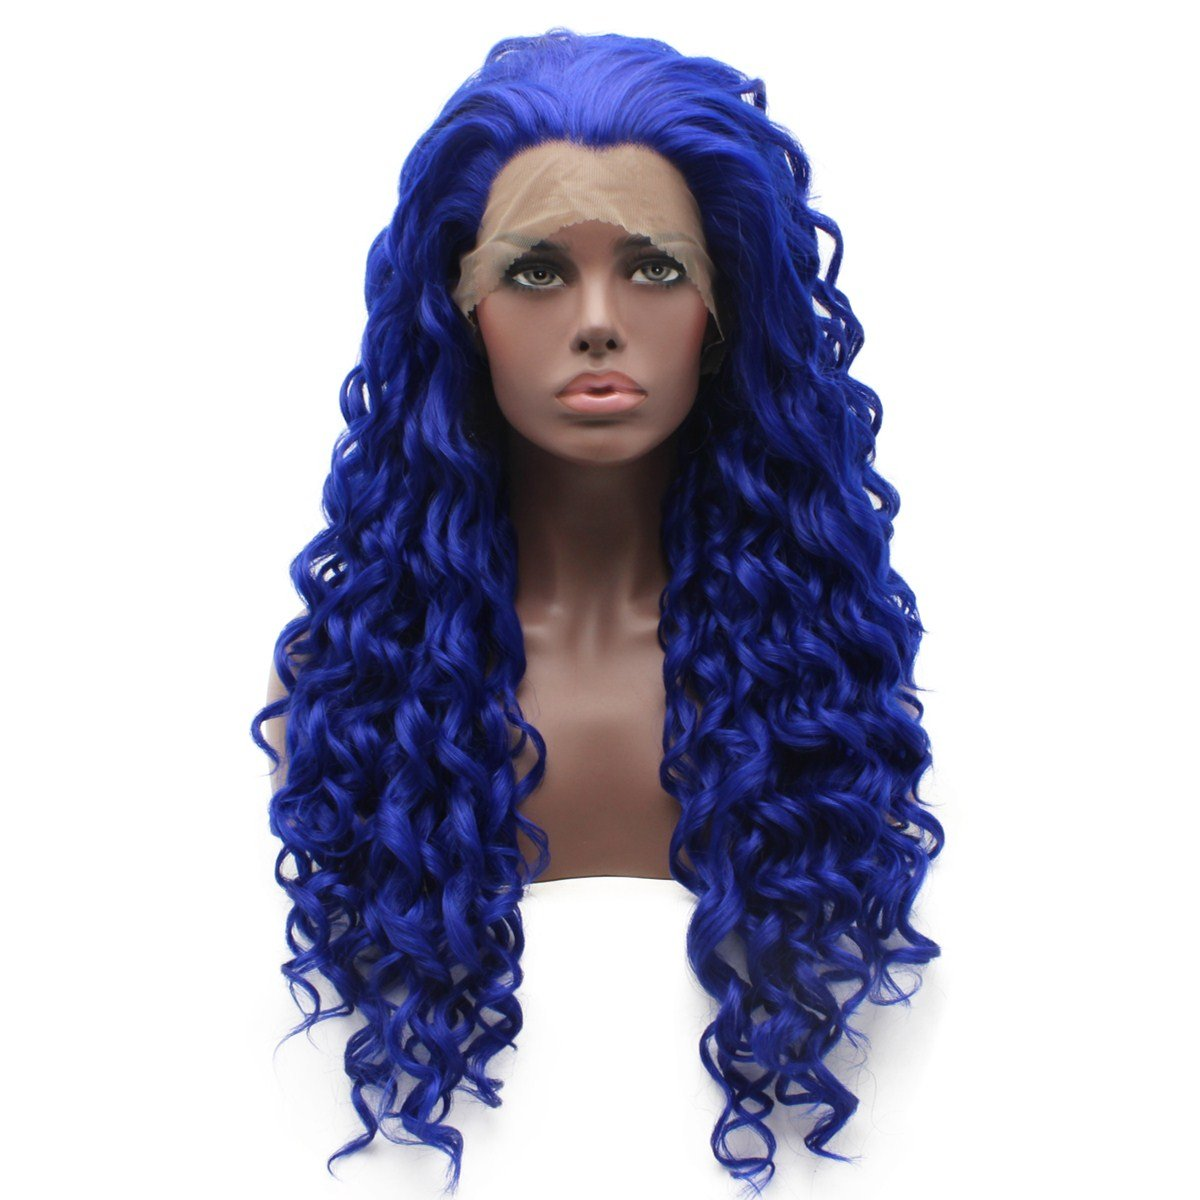 Iewig Long Curly Blue Heat Resistant Wig Half Hand Tied Synthetic Hair Front Lace Wig